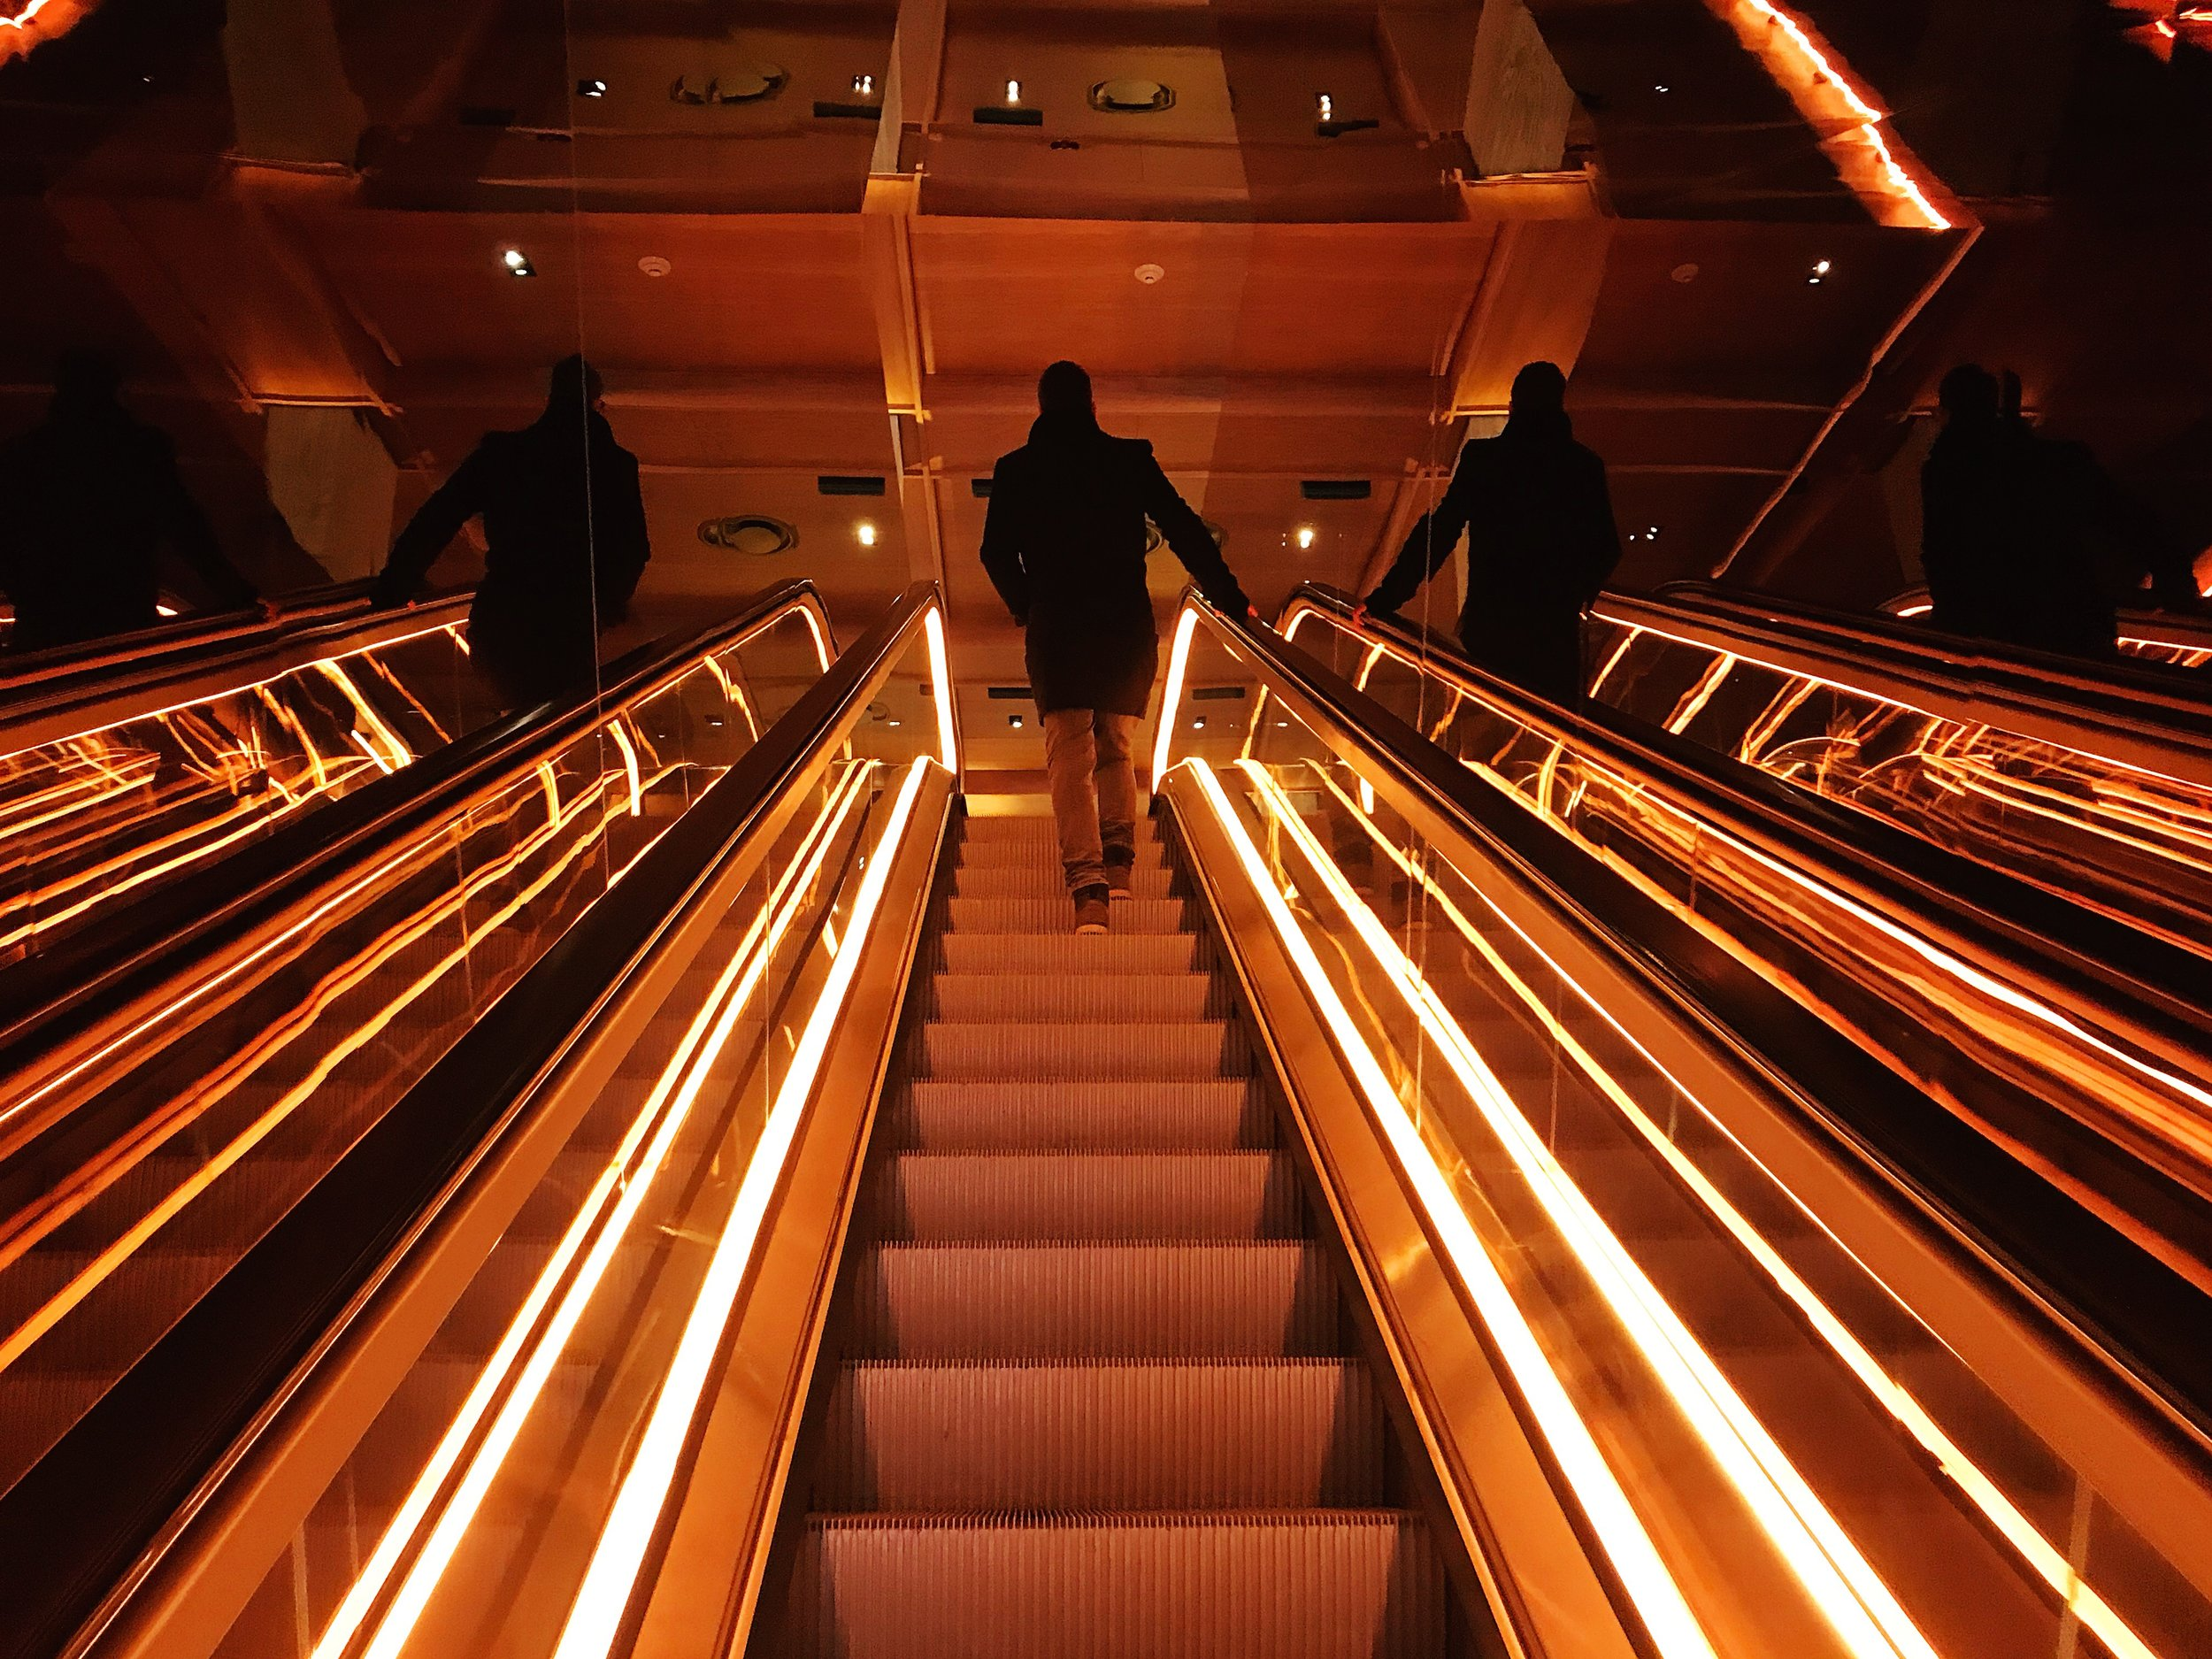 new-york-blog-3-days-timeline-travel-public-escalator.jpg